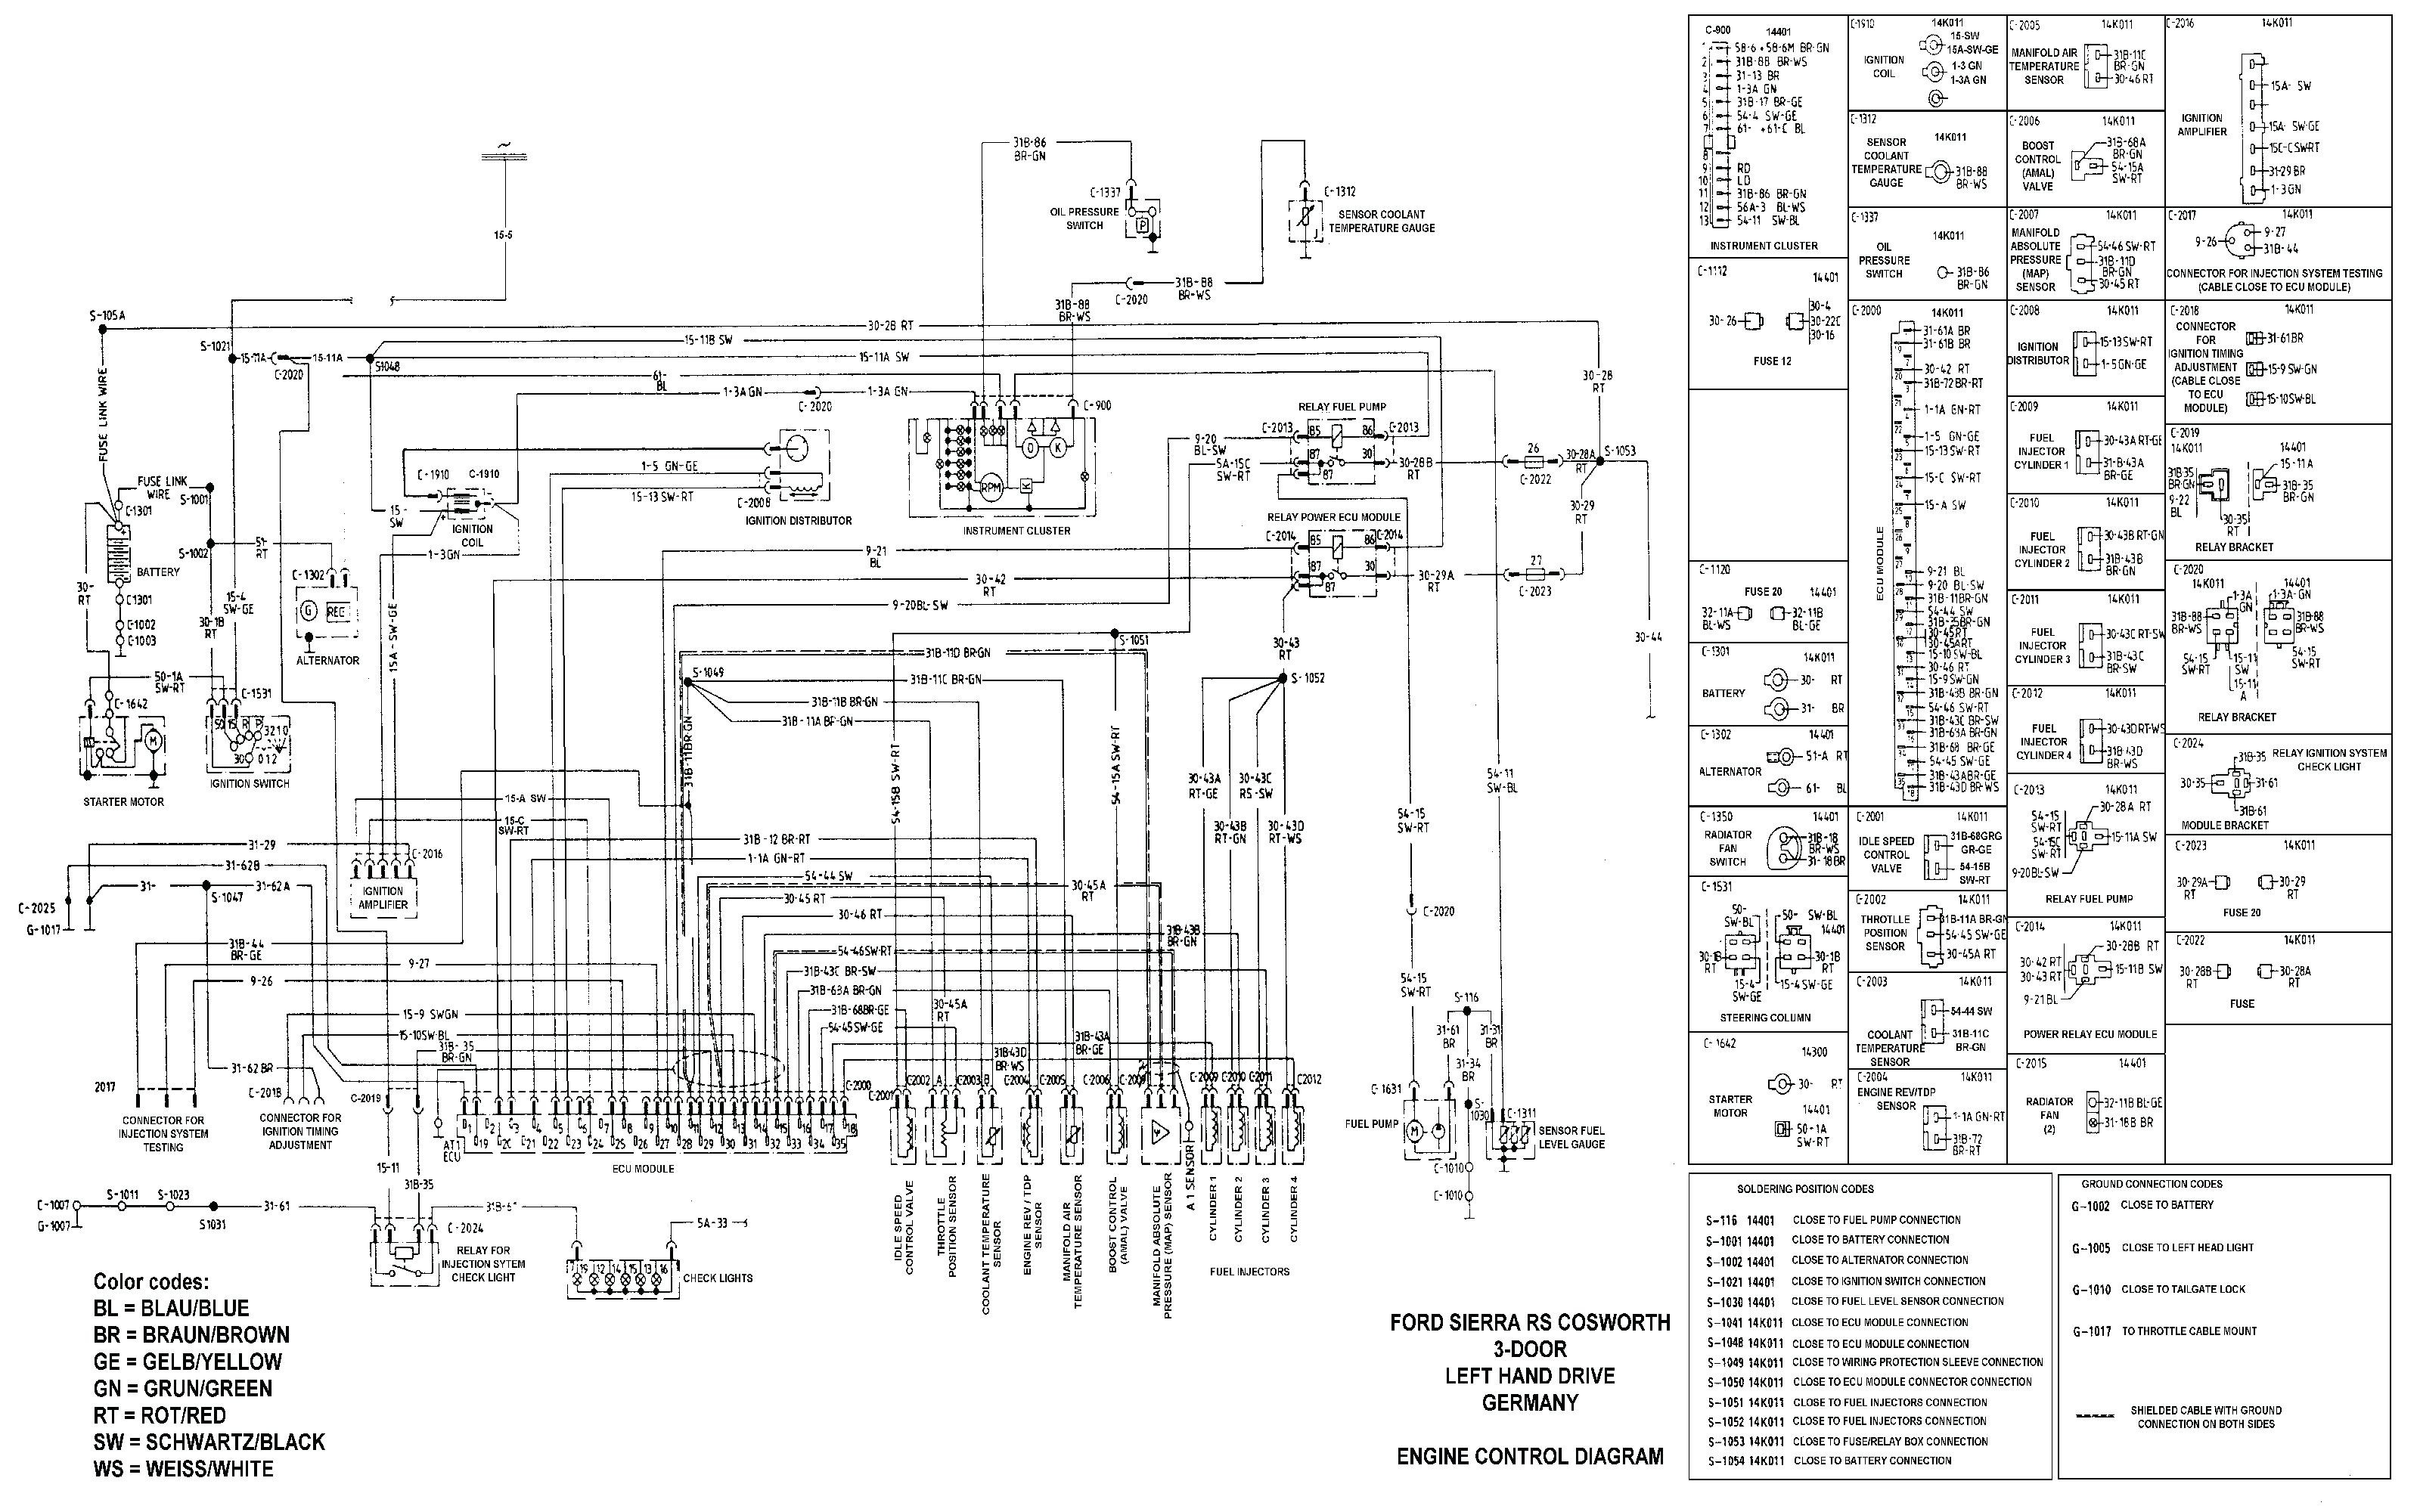 2009 Ford Escape Engine Diagram Wiring 2010 Fusion Diagrams Data Base Of